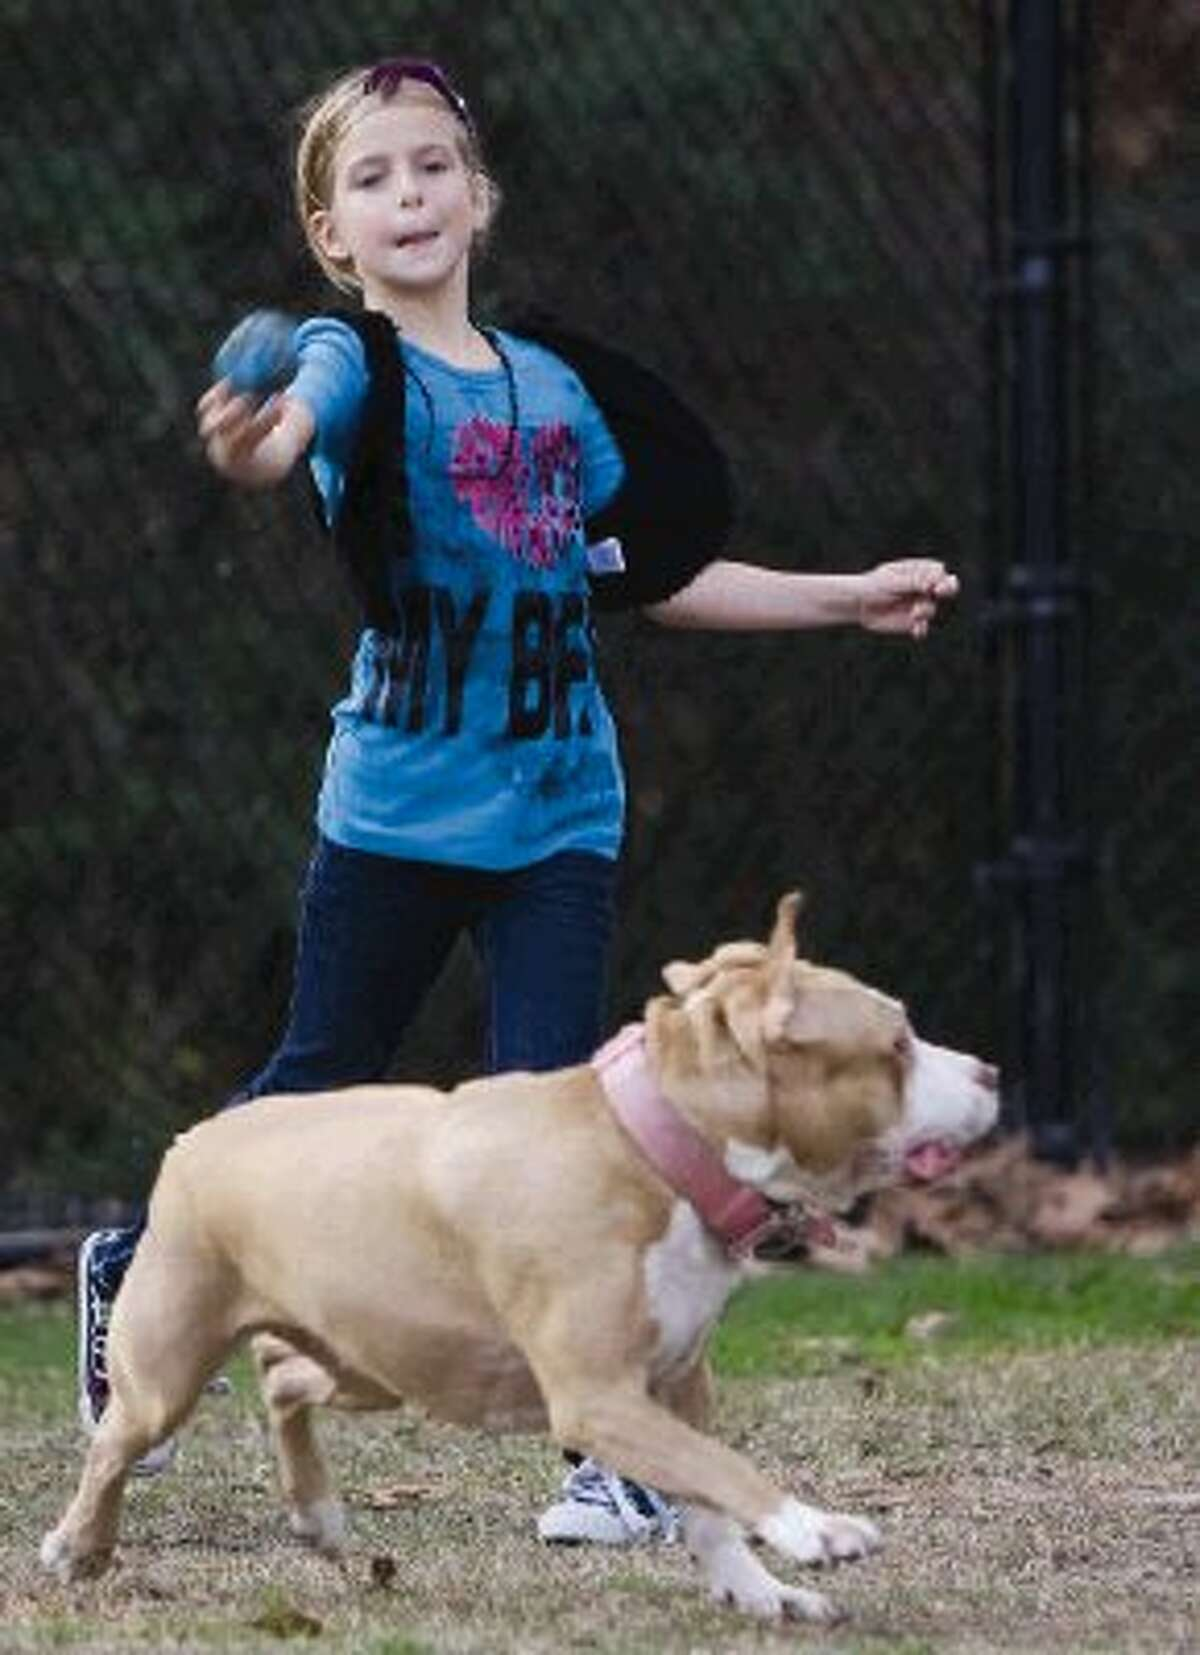 Hayden Ogden, 8, plays with Lady, a pit bull, at a park in The Woodlands on Tuesday.